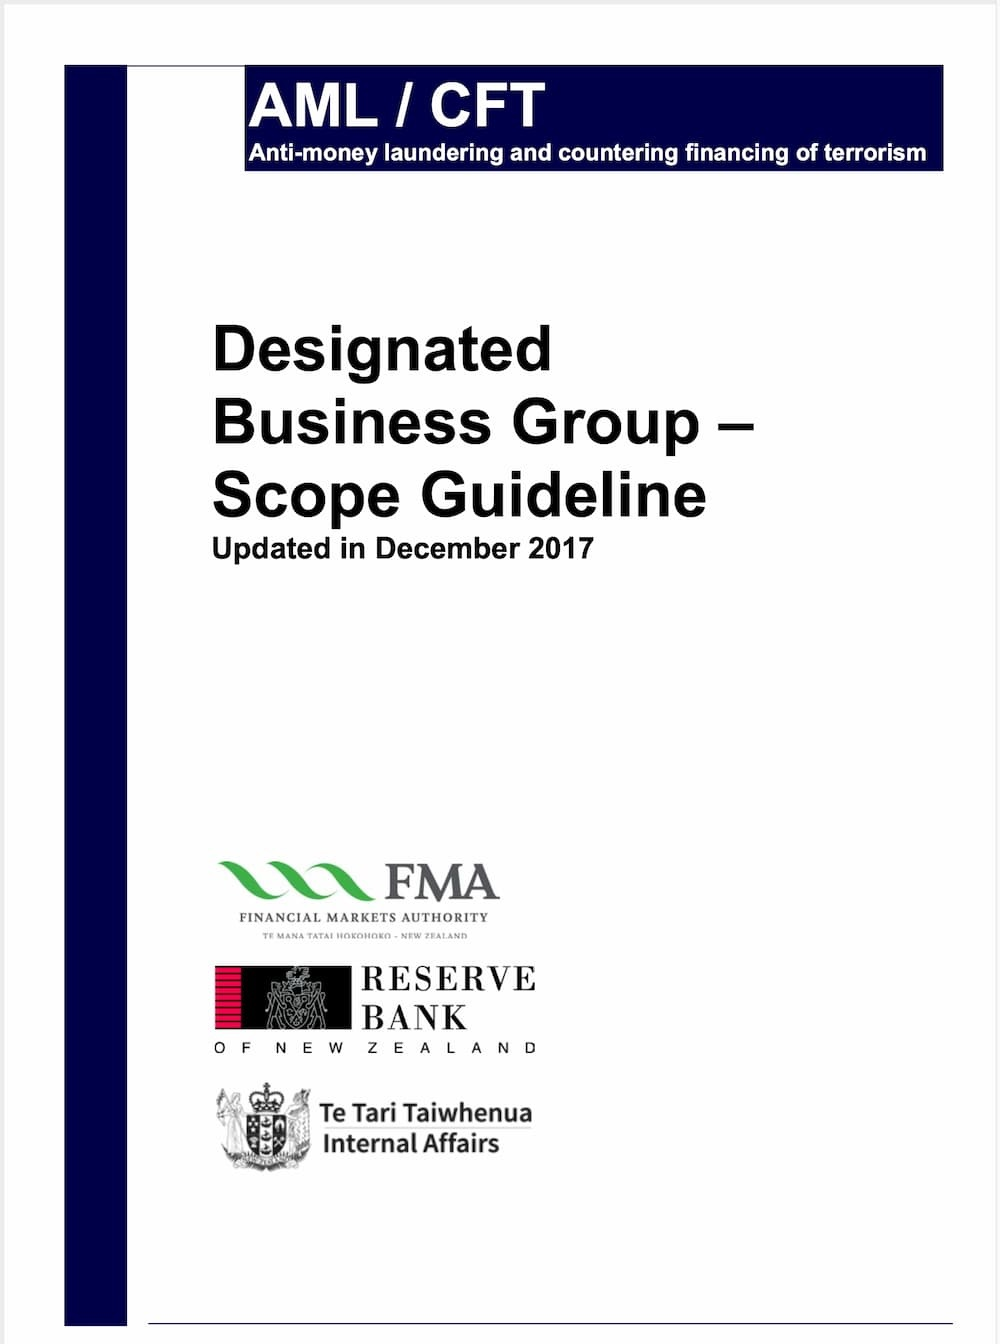 Designated Business Group Scope Guideline